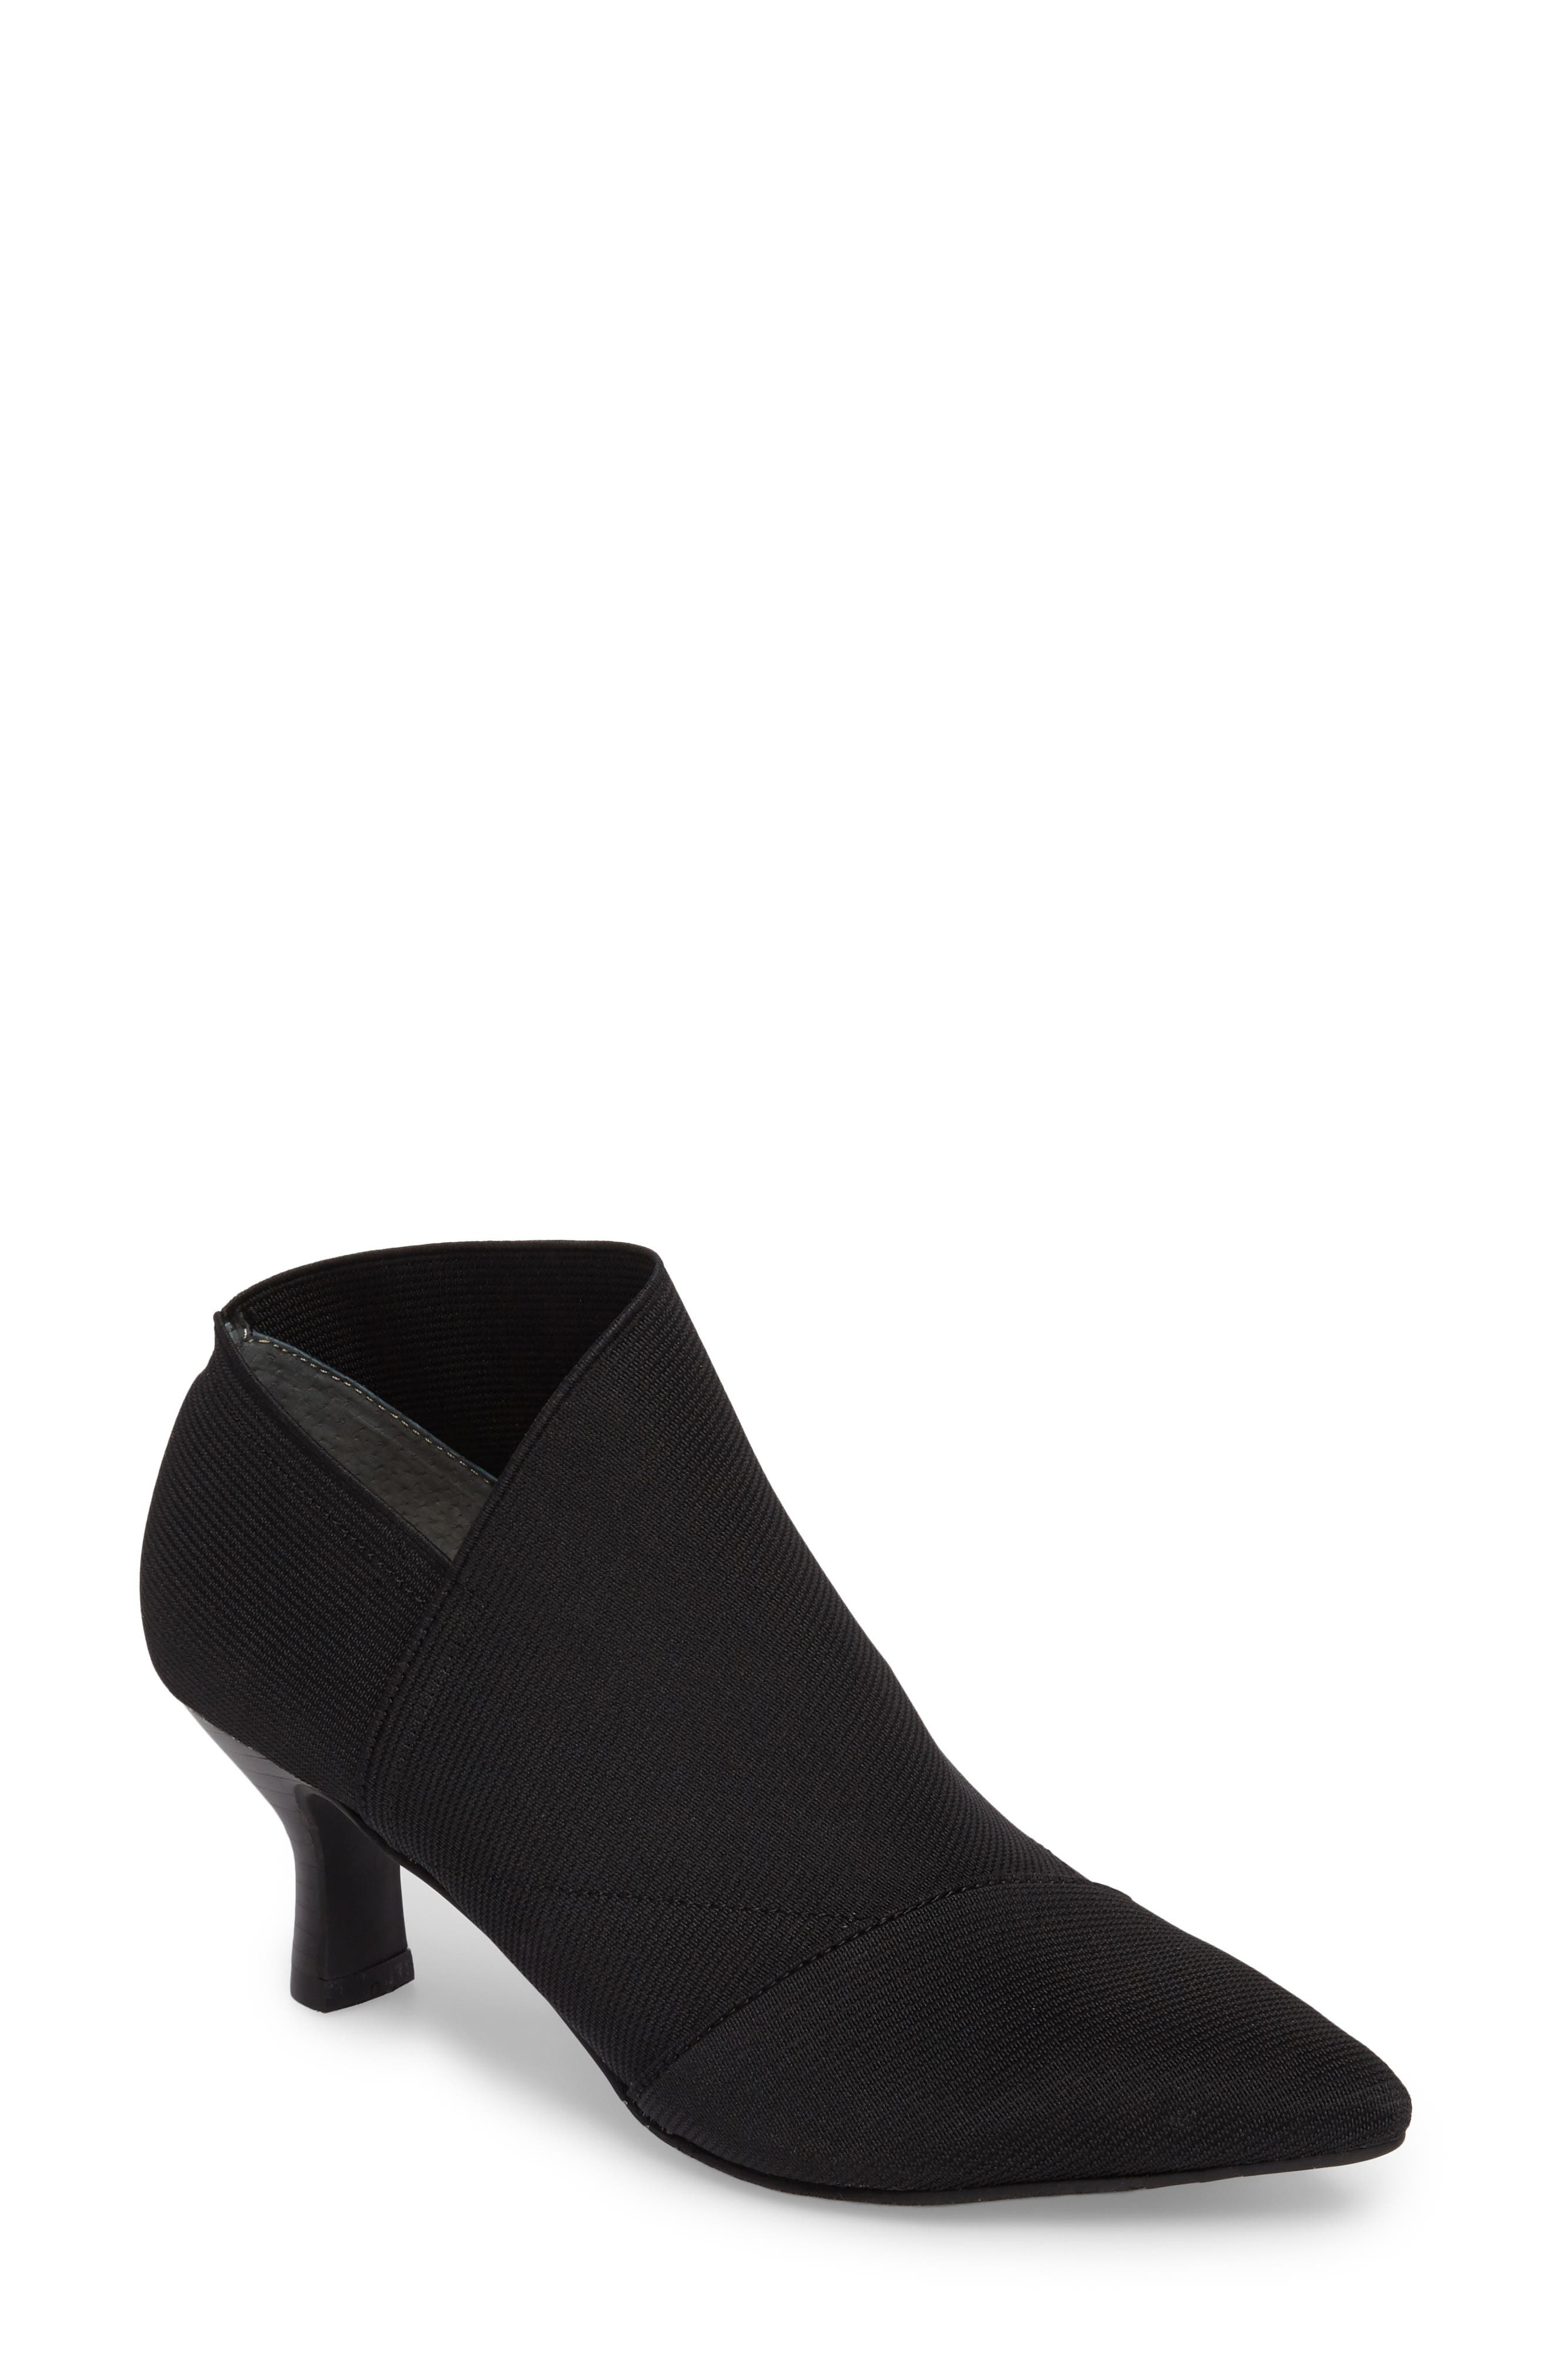 Main Image - Adrianna Papell Hayes Pointy Toe Bootie (Women)